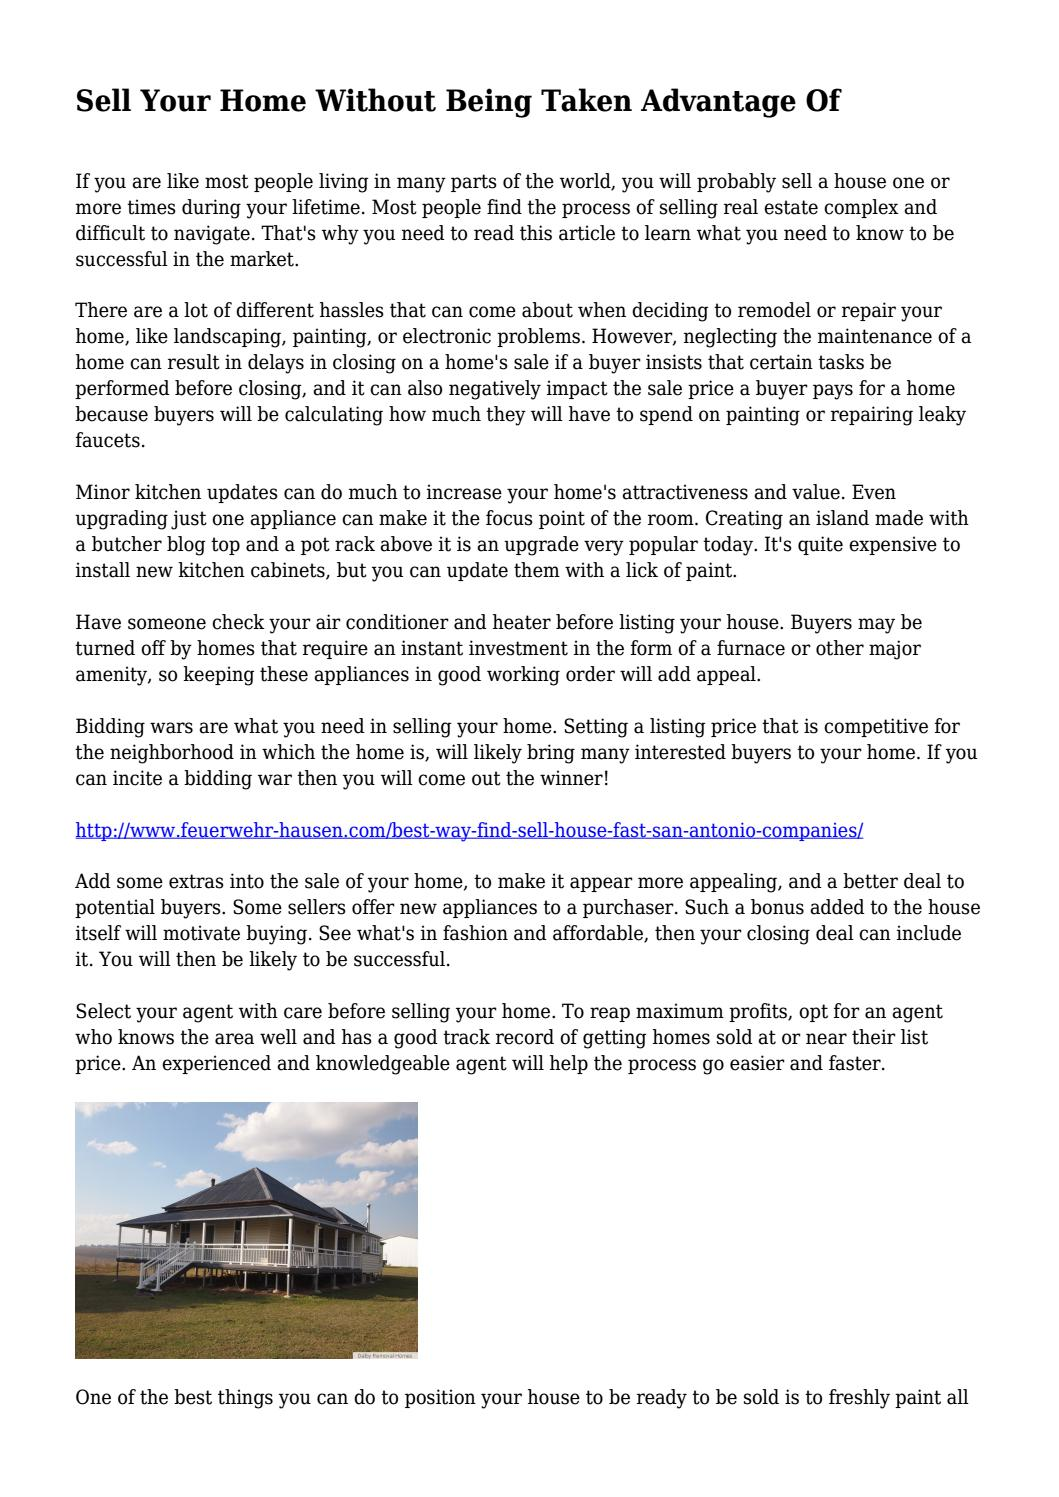 Sell Your Home Without Being Taken Advantage Of    by